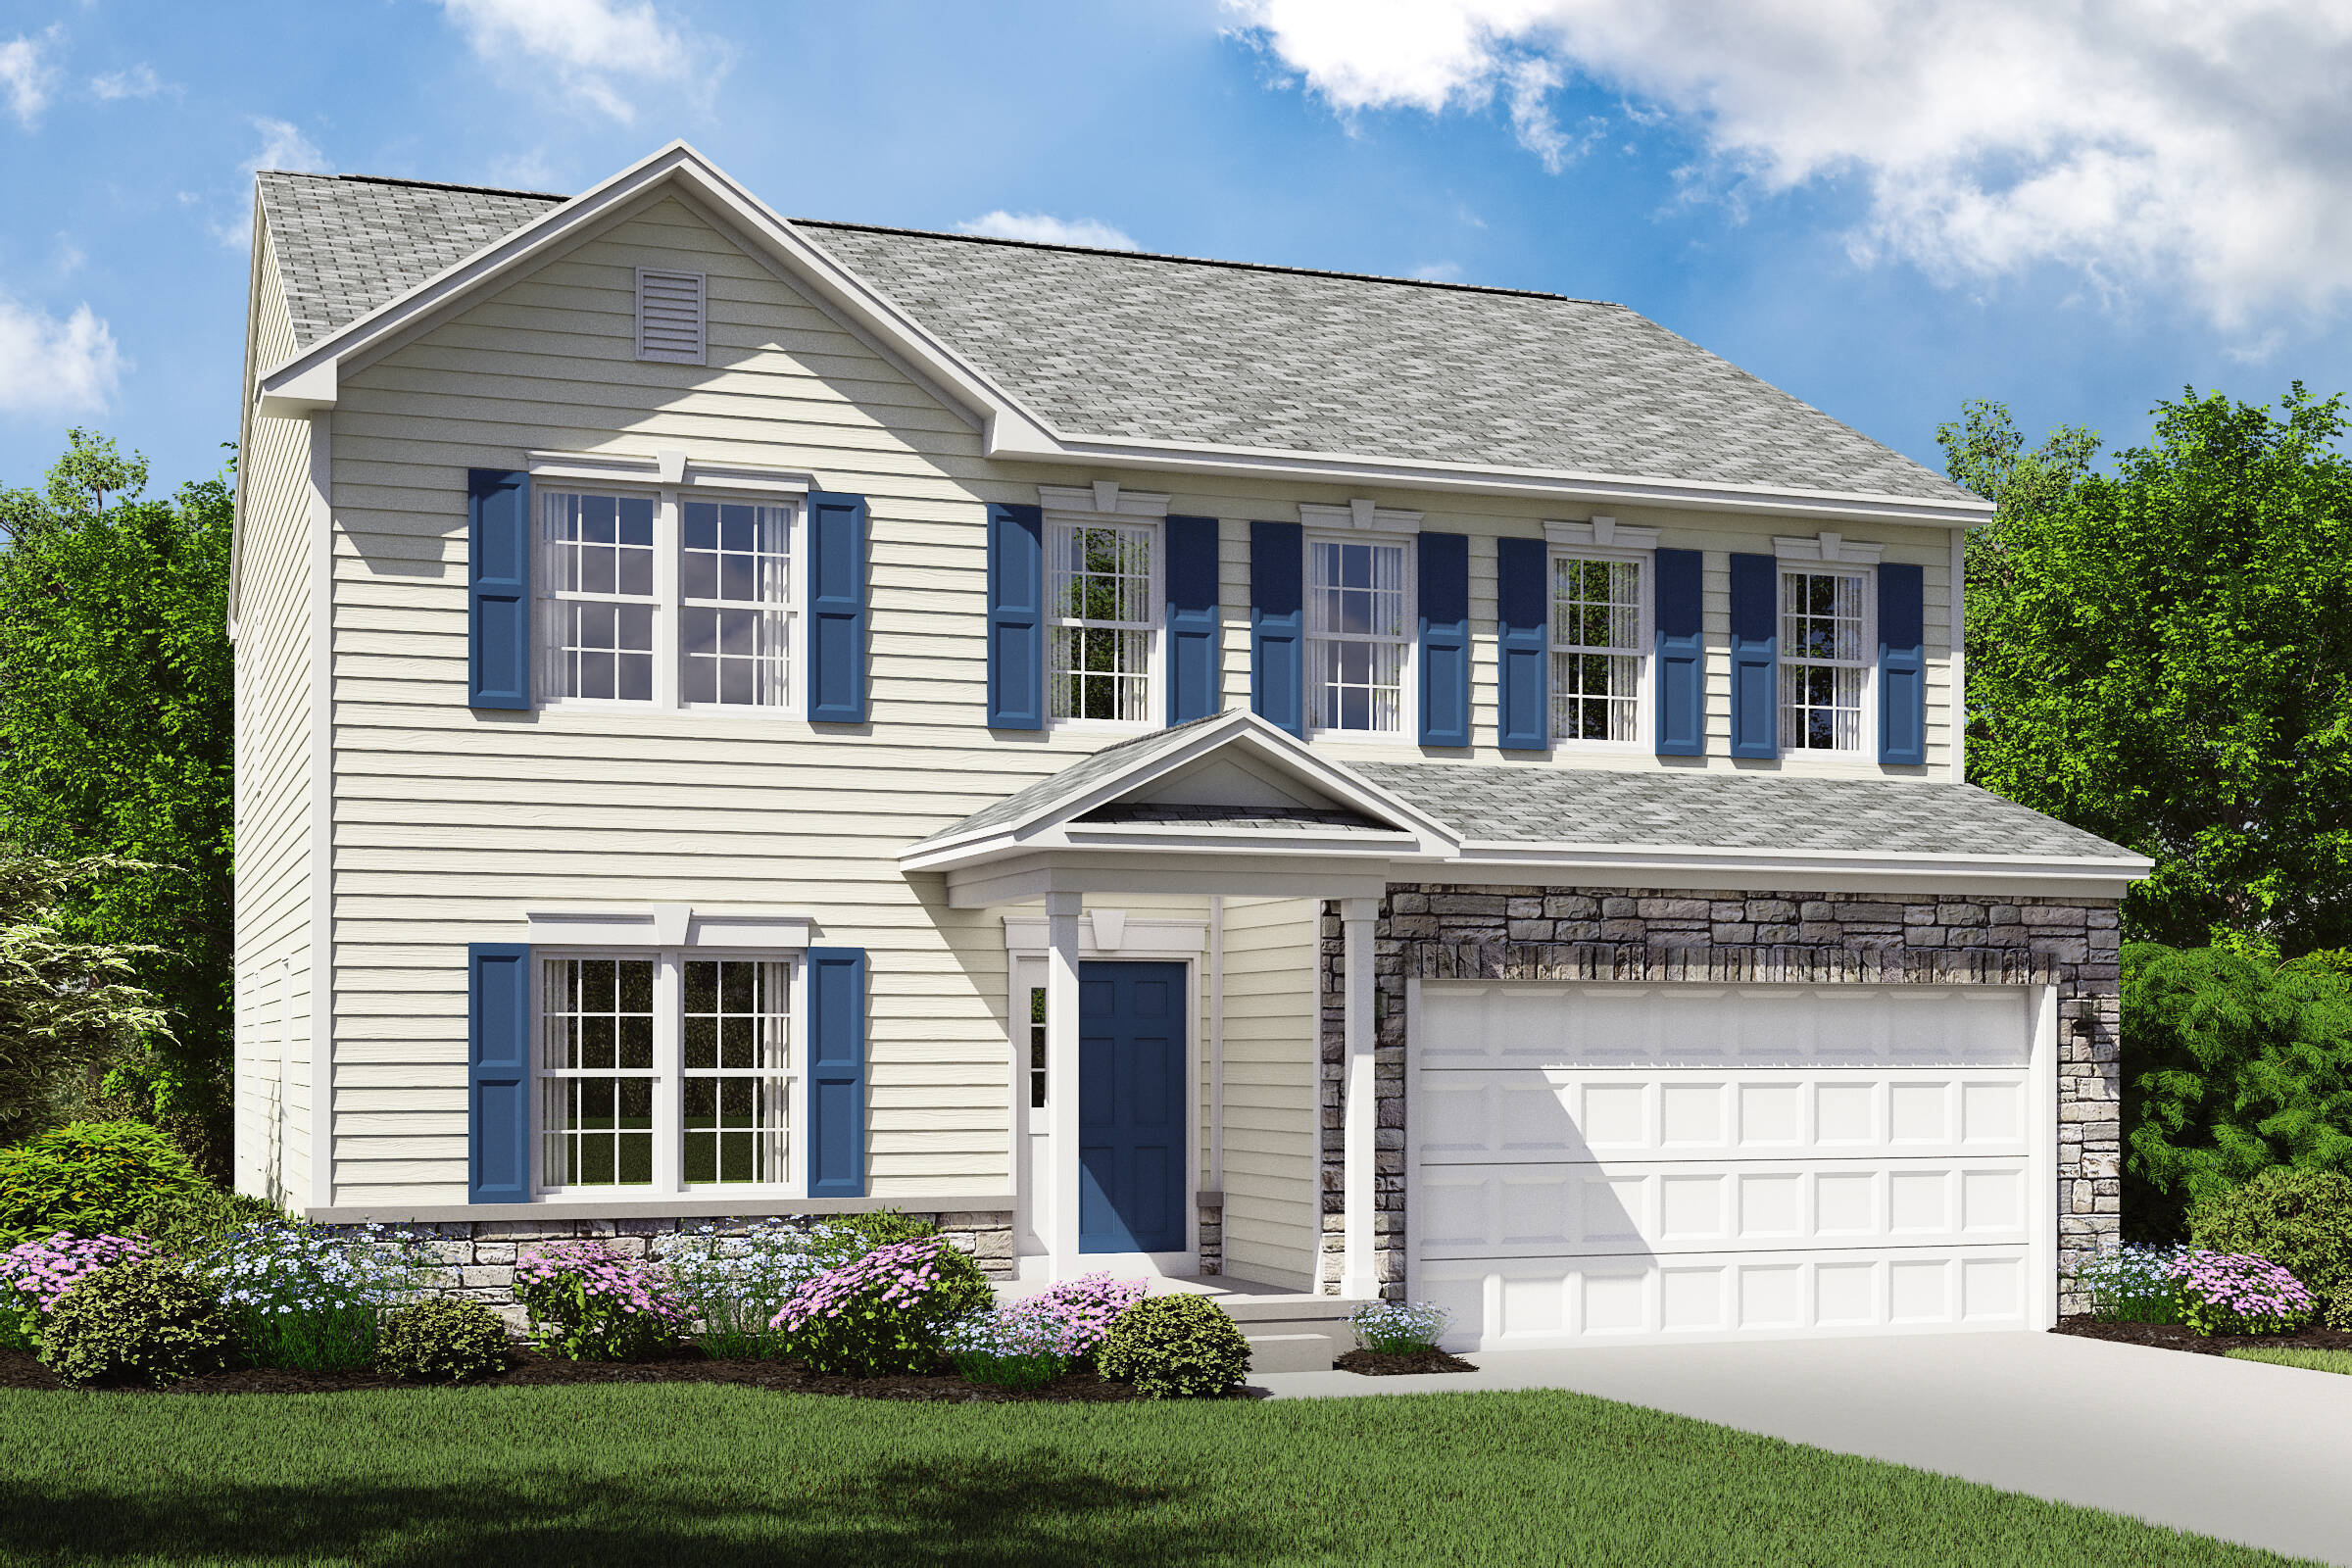 brantwood bt available homes in cleveland